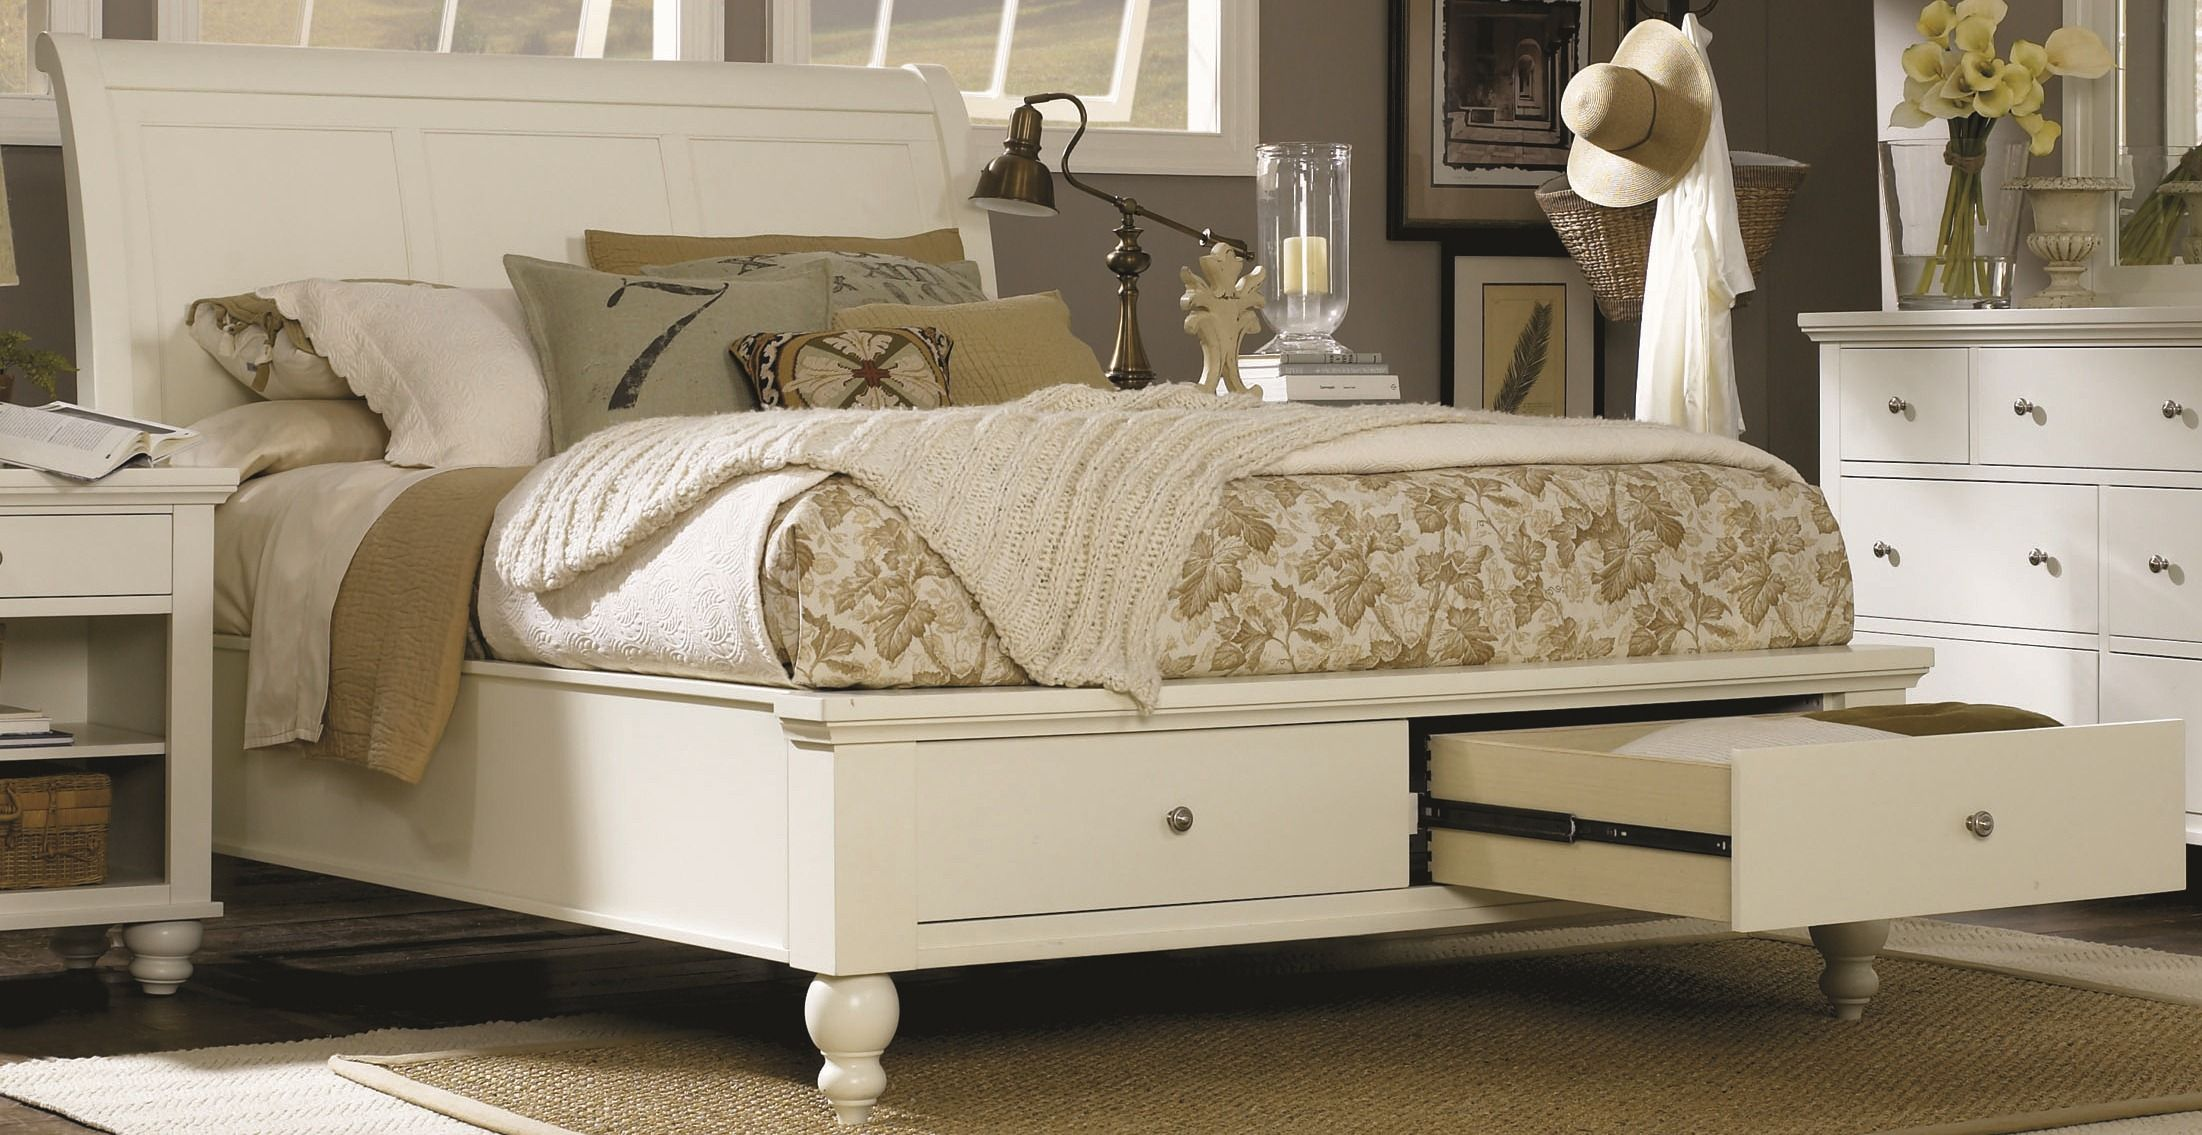 Teenage Bedroom Cambridge Eggshell Queen Bed With Storage